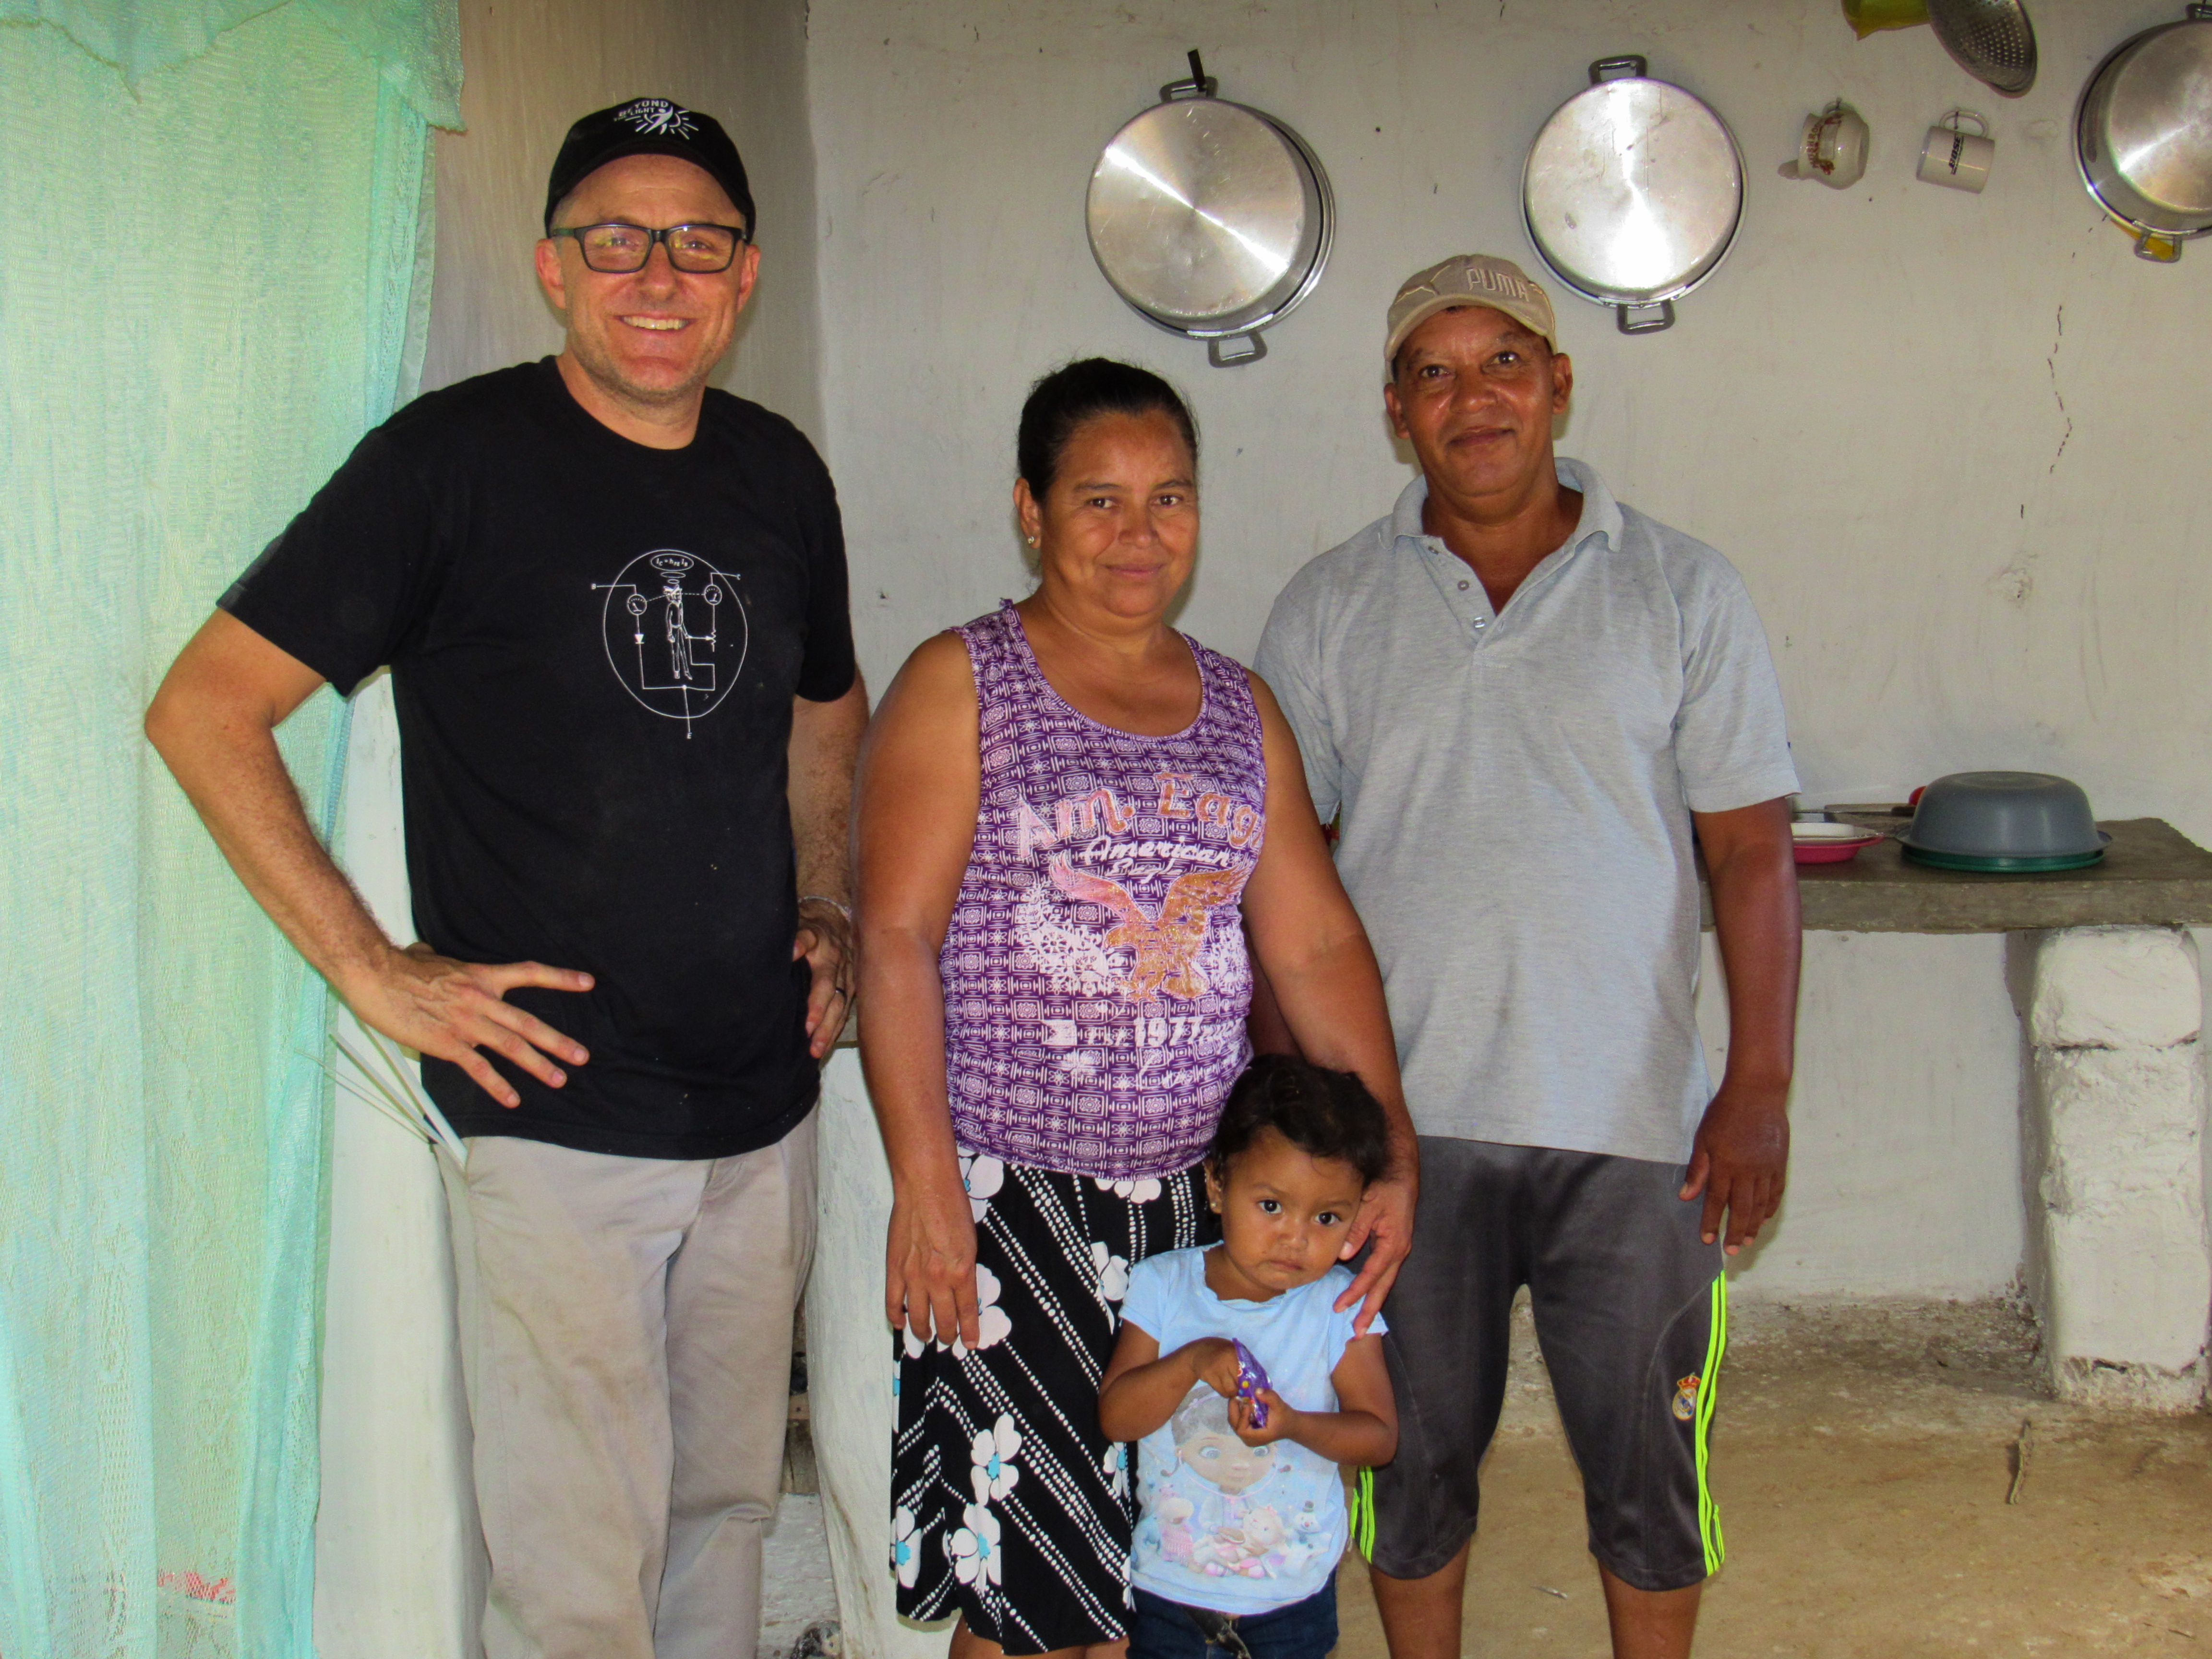 Jimmy with Small Family in Home